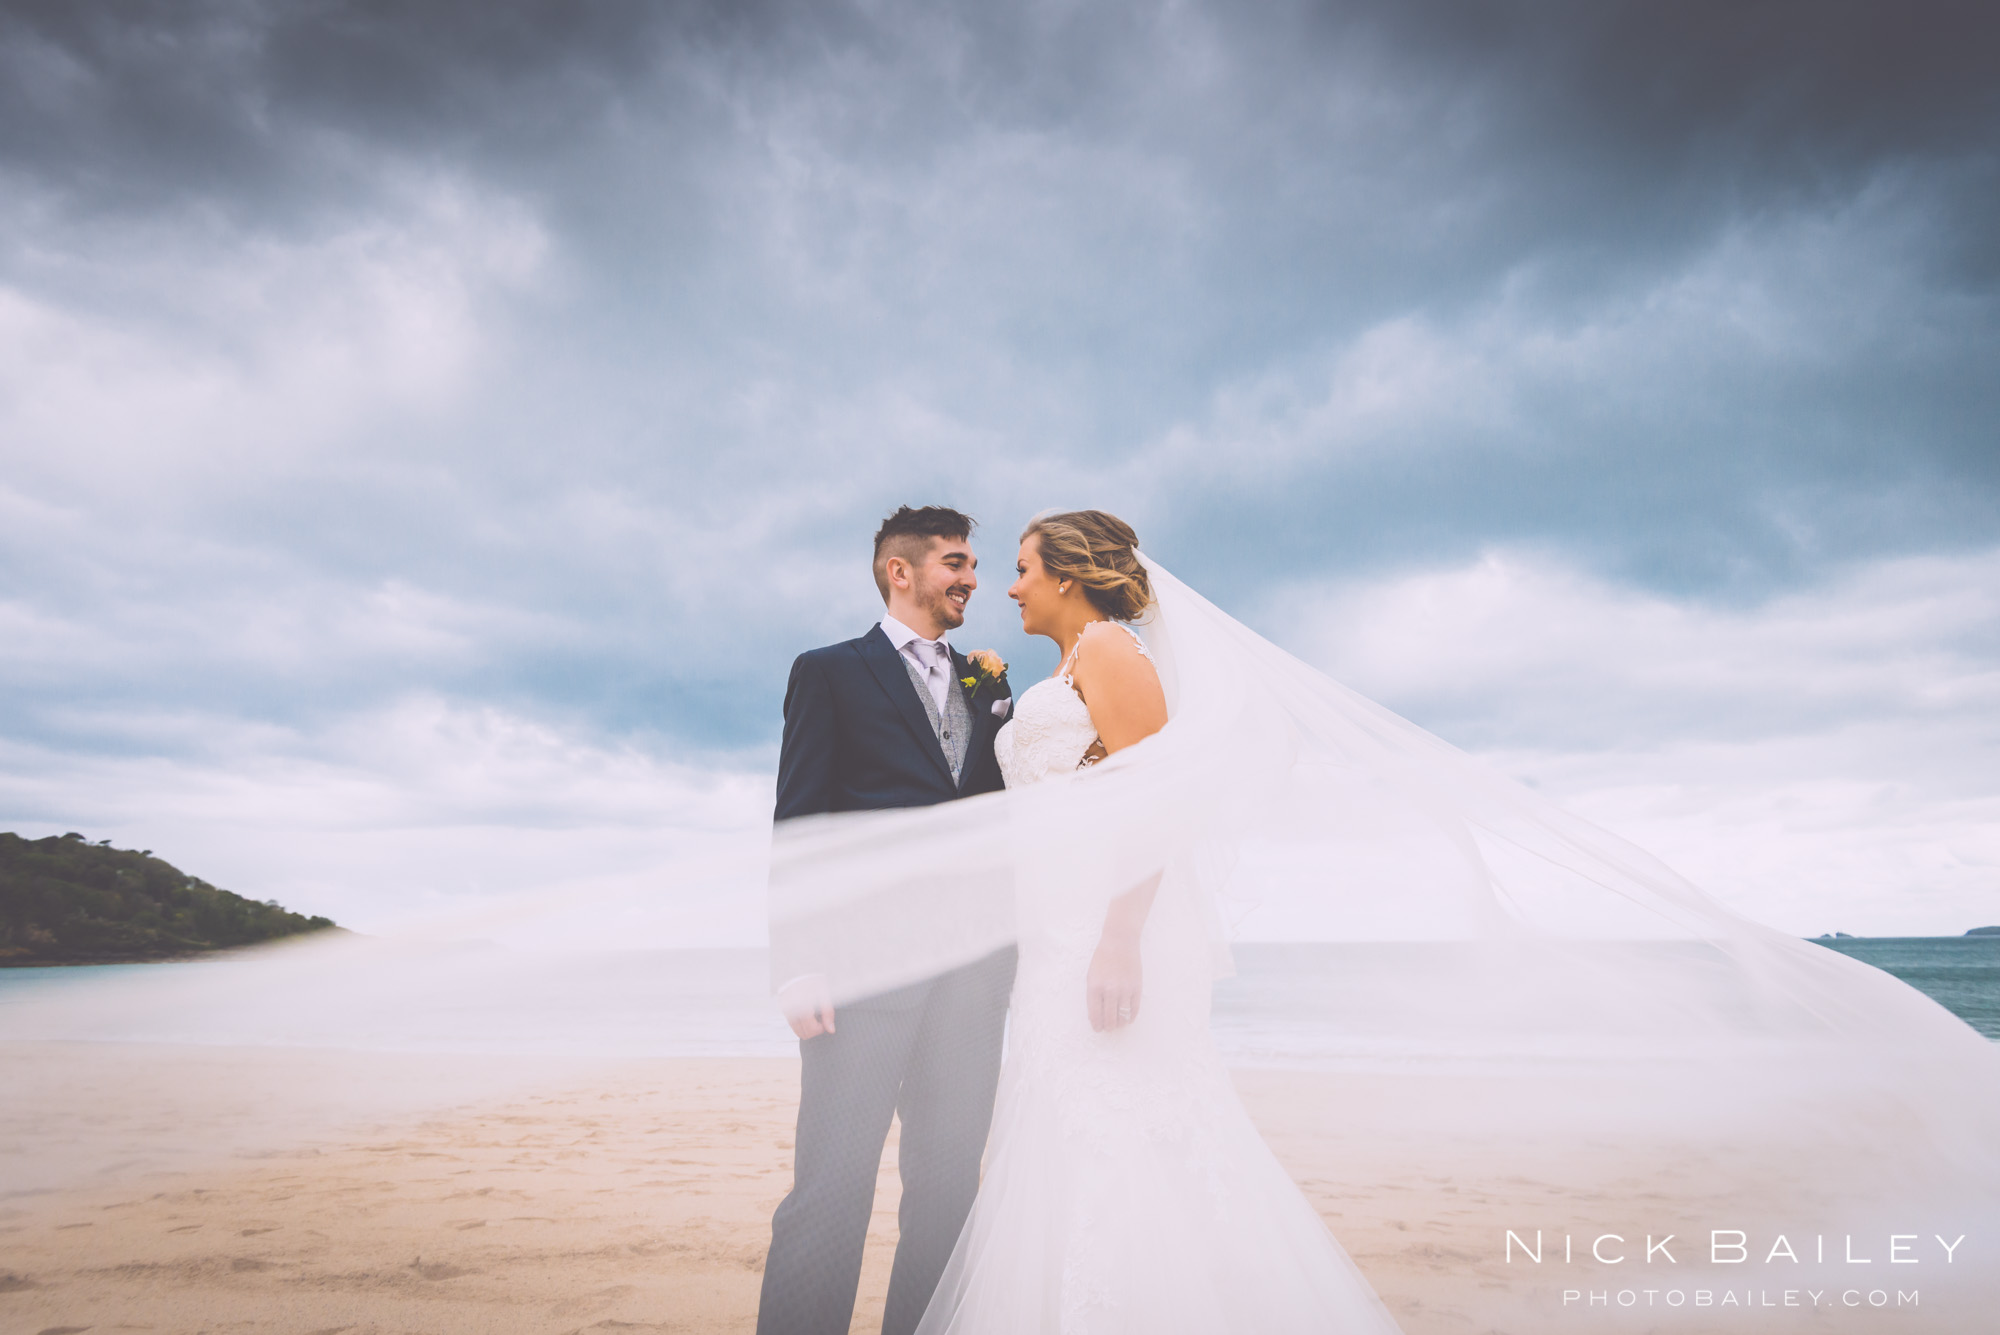 Carbis-Bay-Hotel-Wedding-Photography-52.jpg